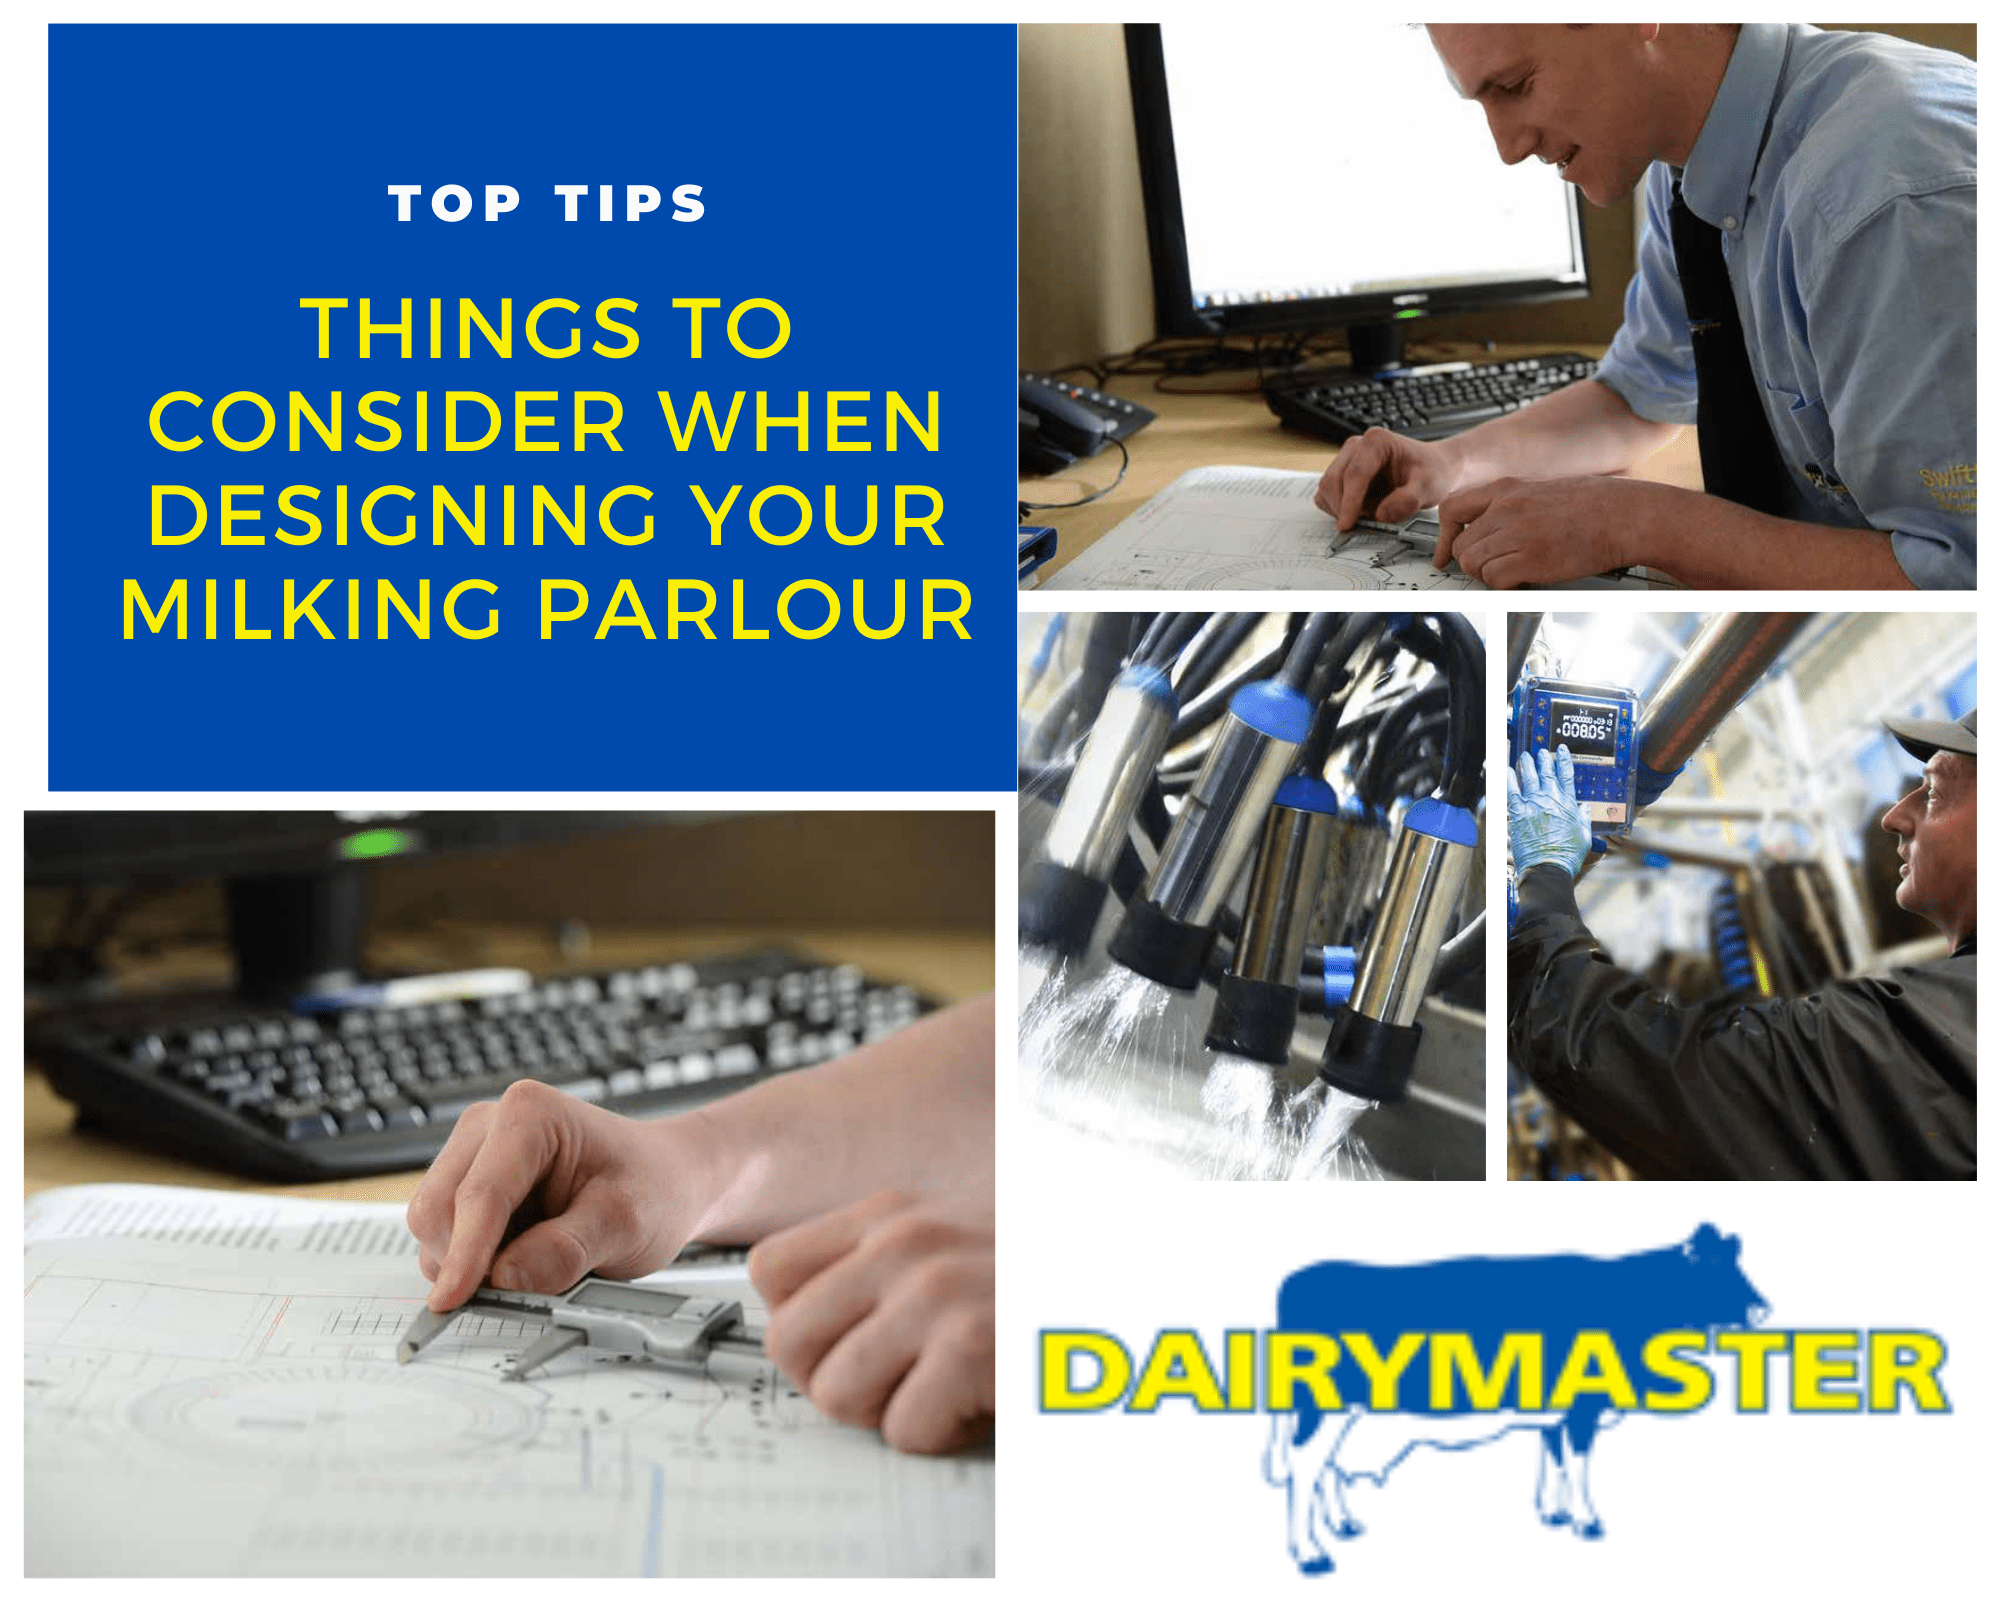 Things to consider when designing your milking parlour